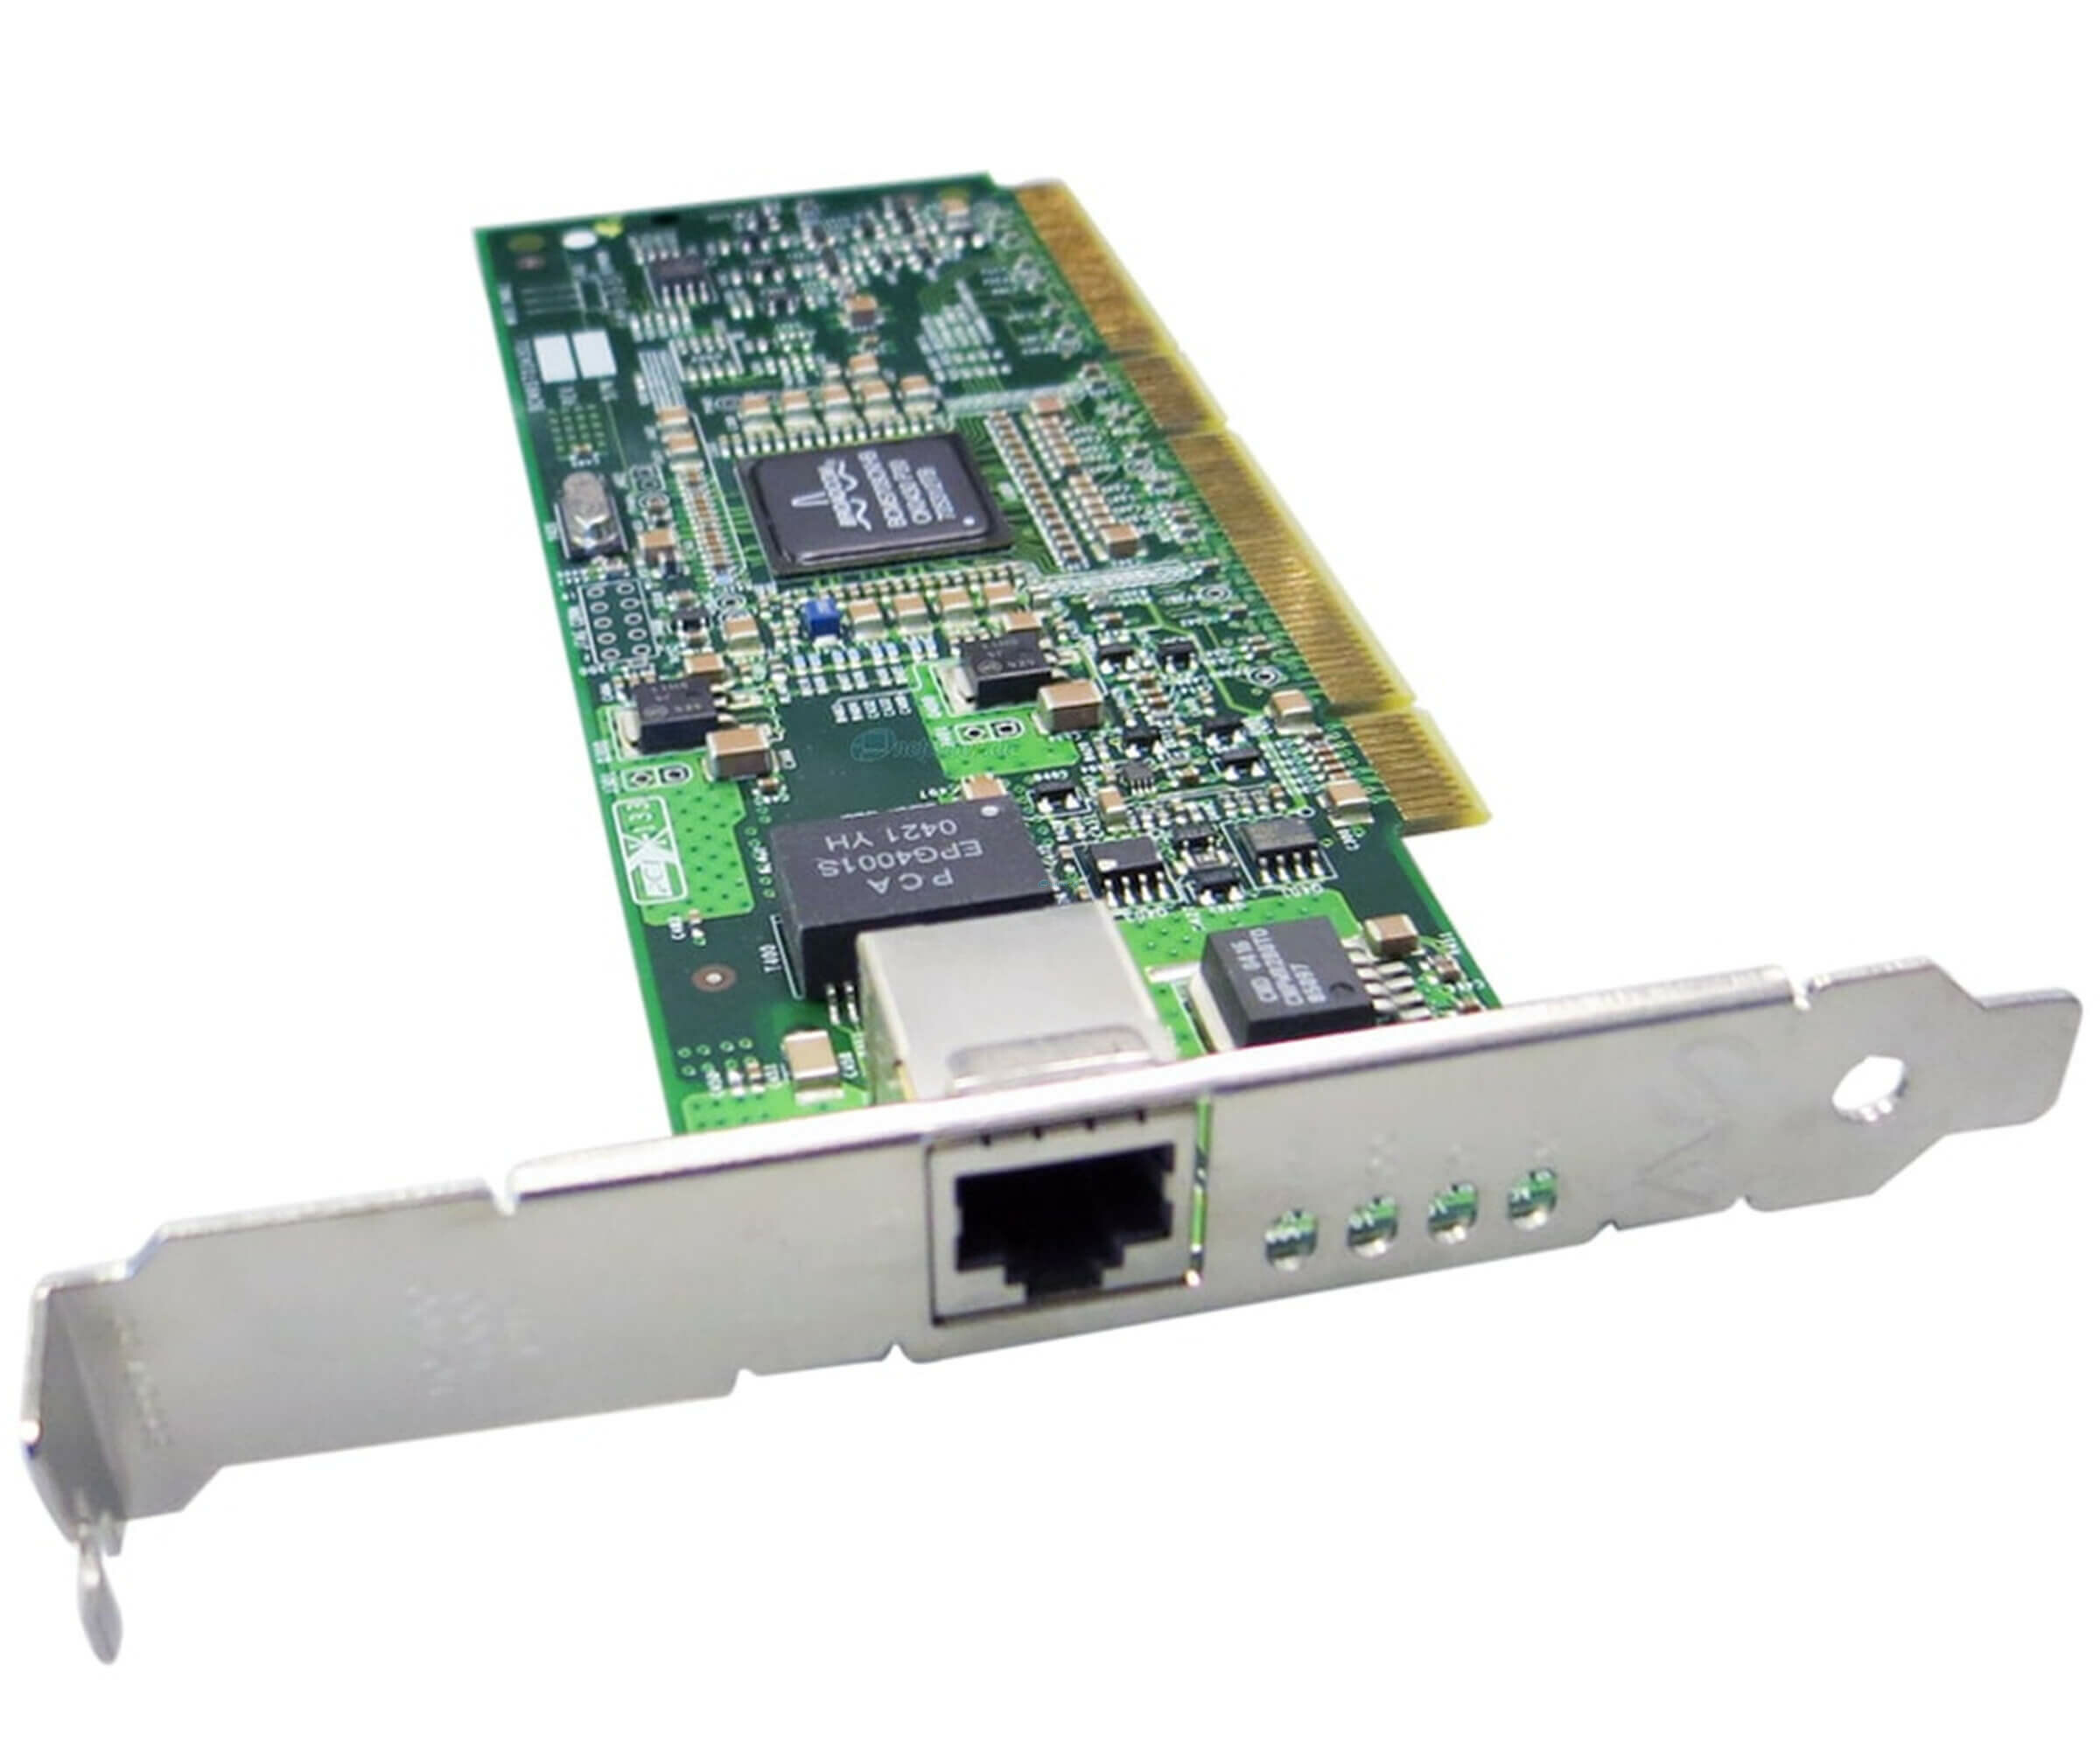 HP 268794-001 - PCI-X 133 Gigabit Ethernet Network Adapter